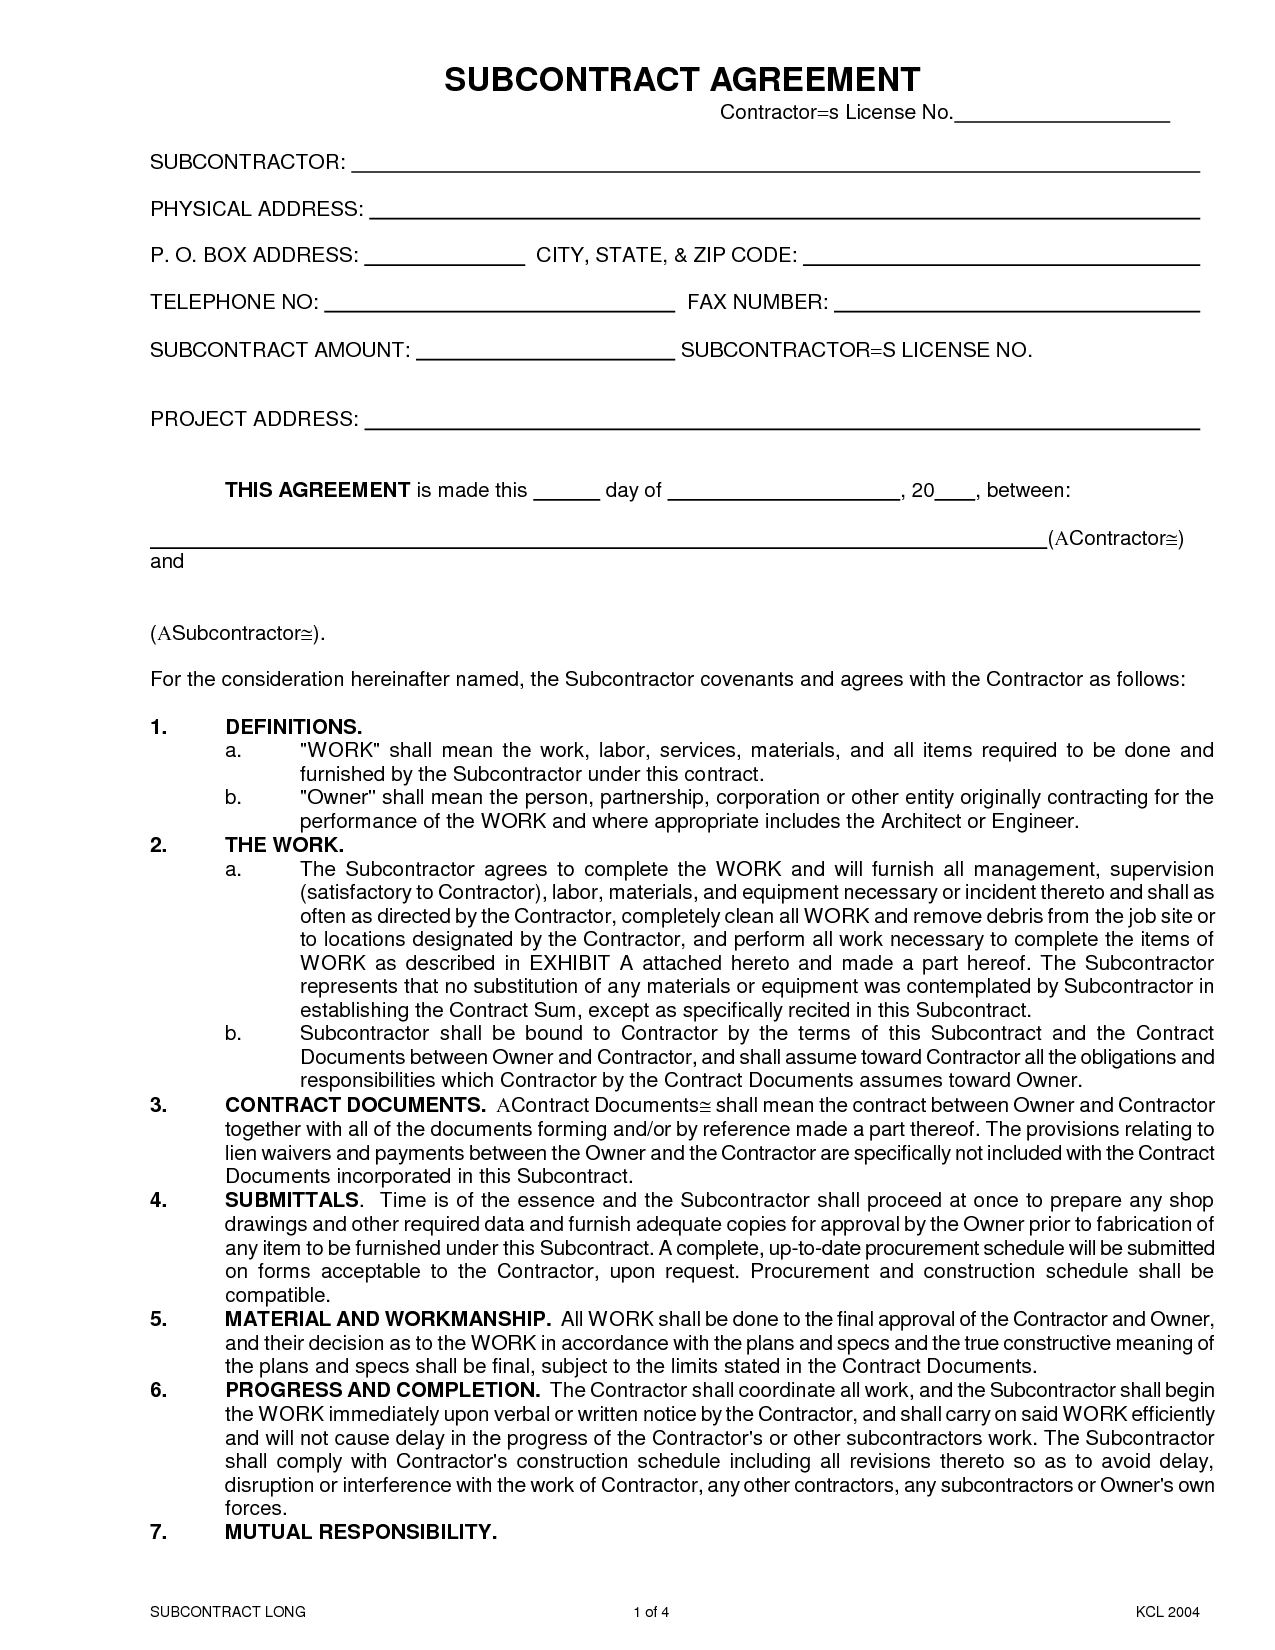 What Should Be Included In A Subcontractor Agreement